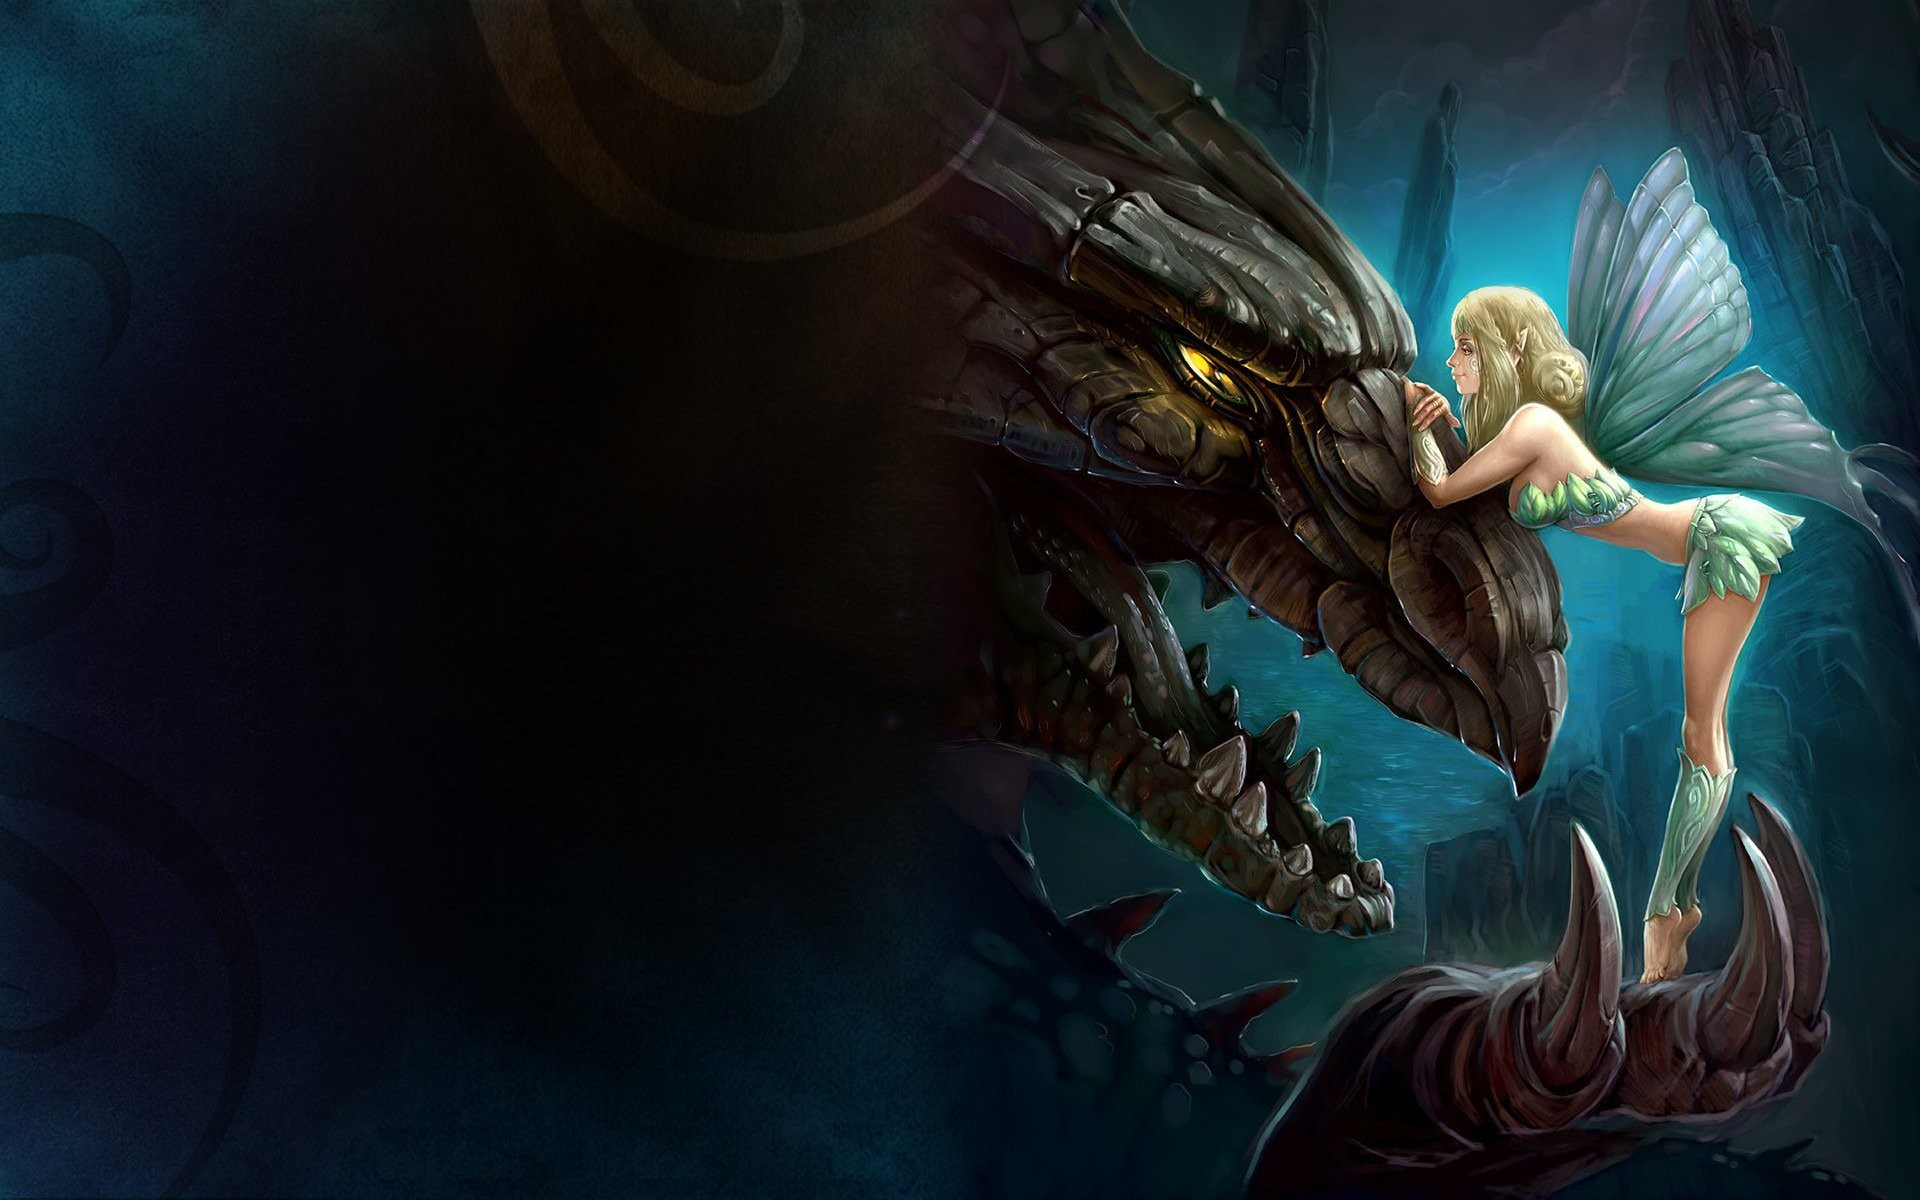 1920x1200 Awesome Dragons Pics For Desktop 011417